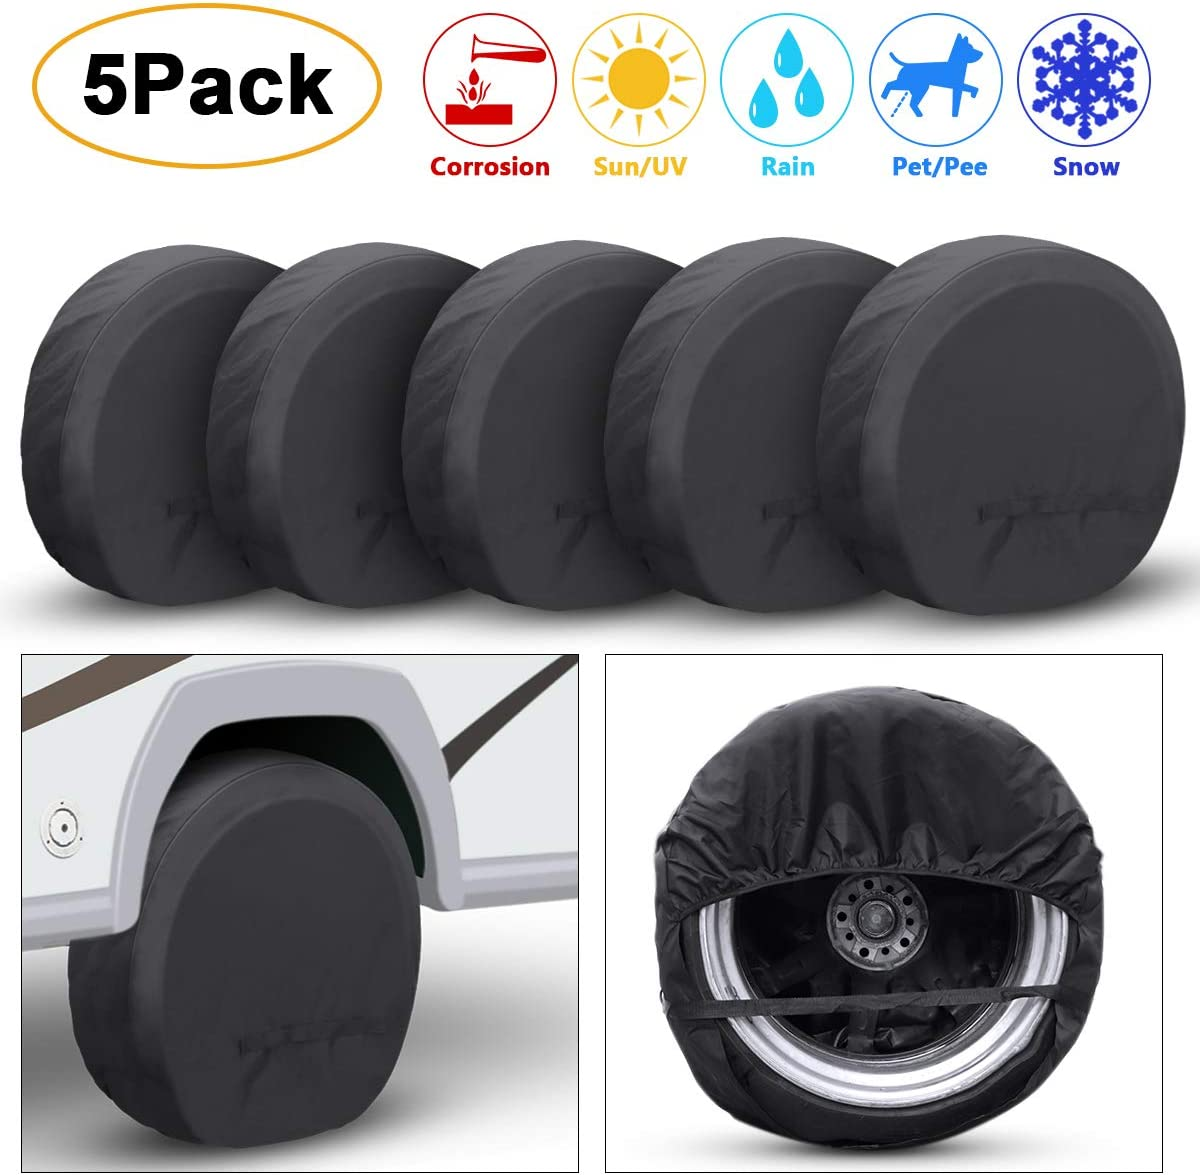 TRAVER DREAM Tire Covers Set of 5 for Rv Travel Trailer Camper, Wheel Covers Sun Rain Frost Snow Protector, Waterproof Tire Protectors, Black, Fits 27-33 Inch Tire Diameter